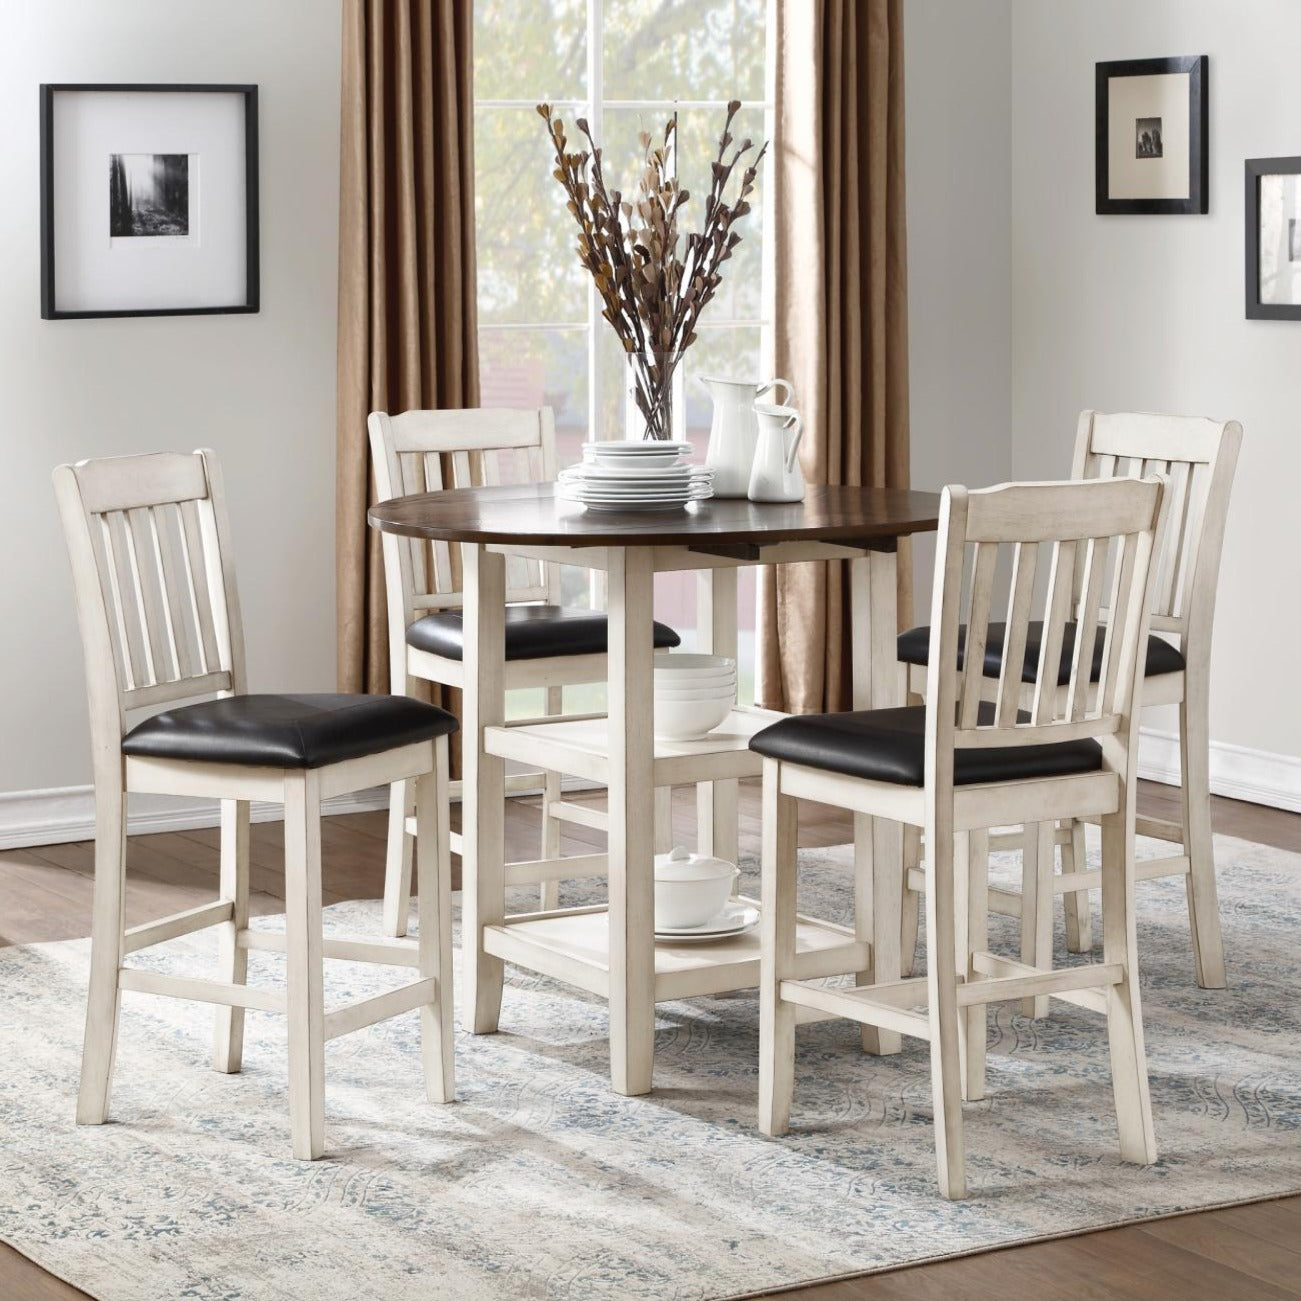 Dining Kiwi 5 Piece Table & Chairs